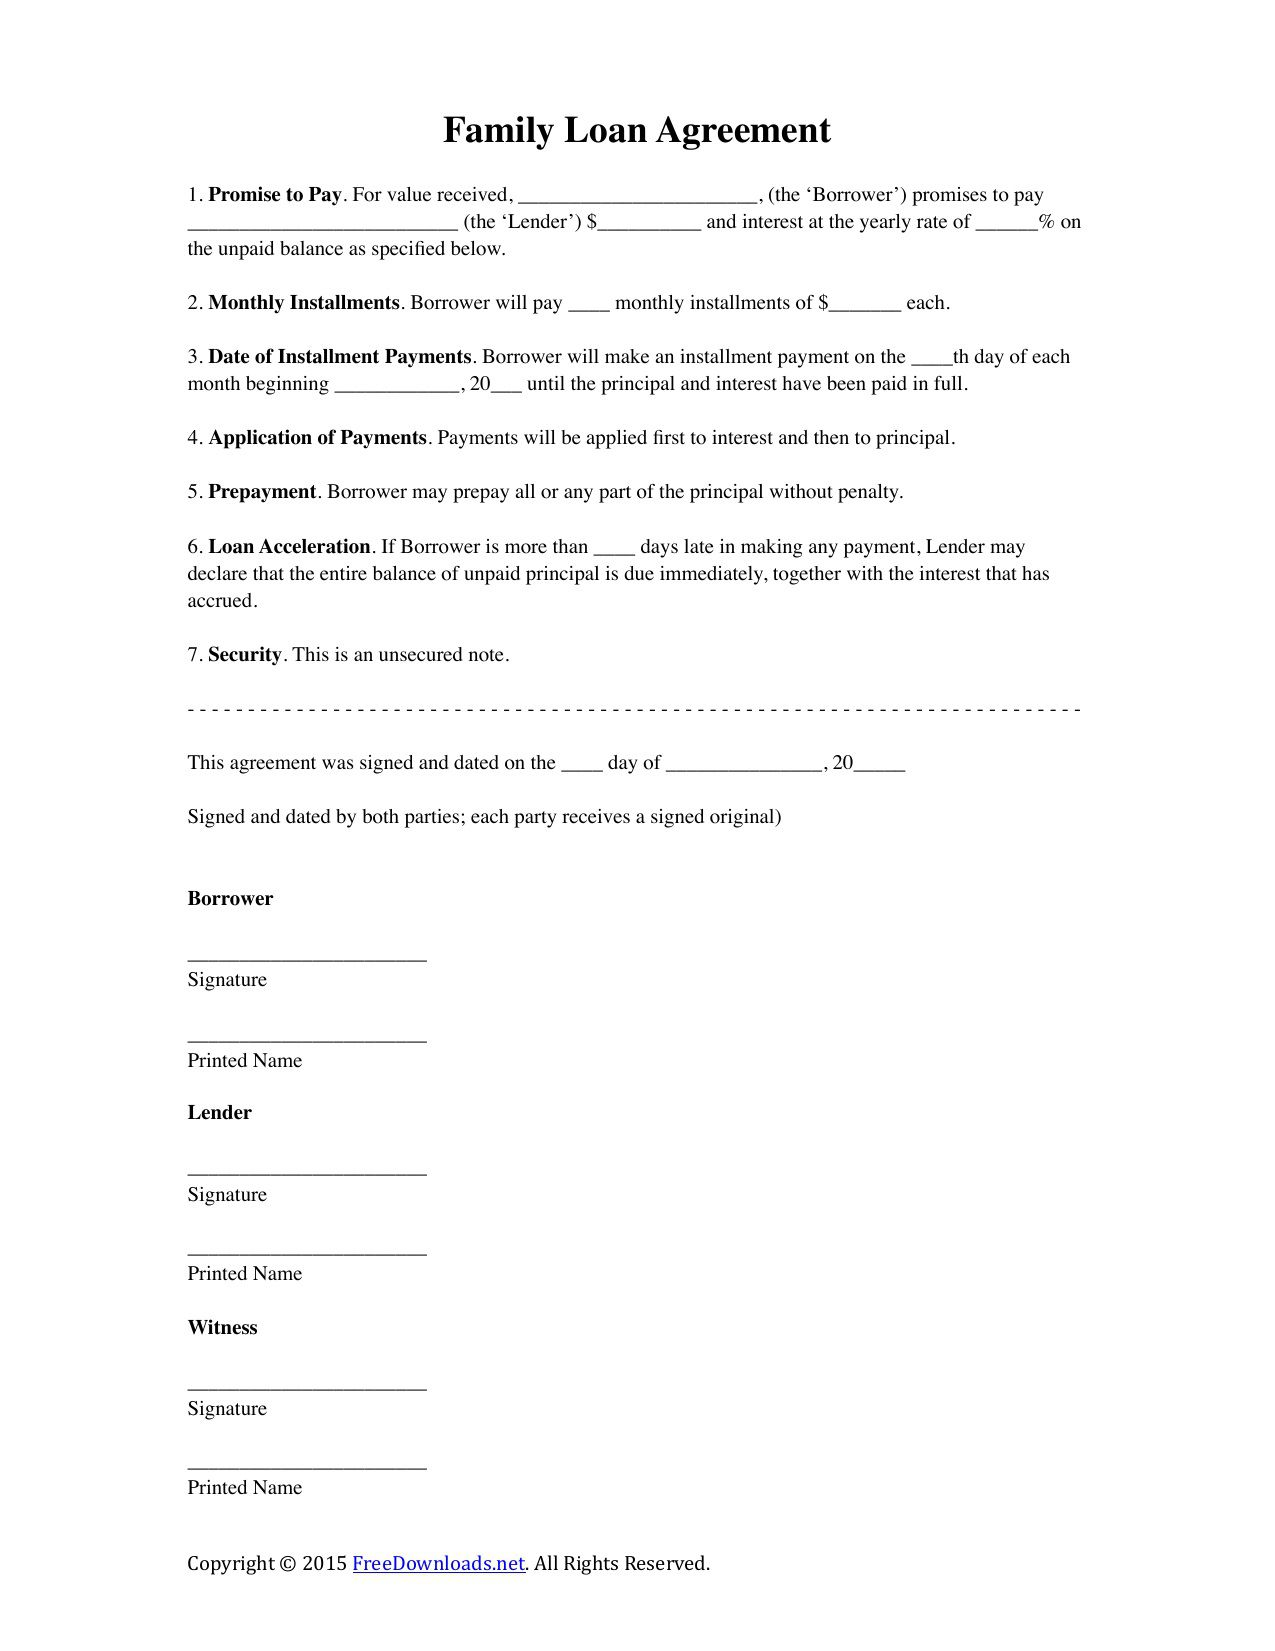 002 Stunning Family Loan Agreement Template Highest Clarity  Free Uk Friend And Simple AustraliaFull